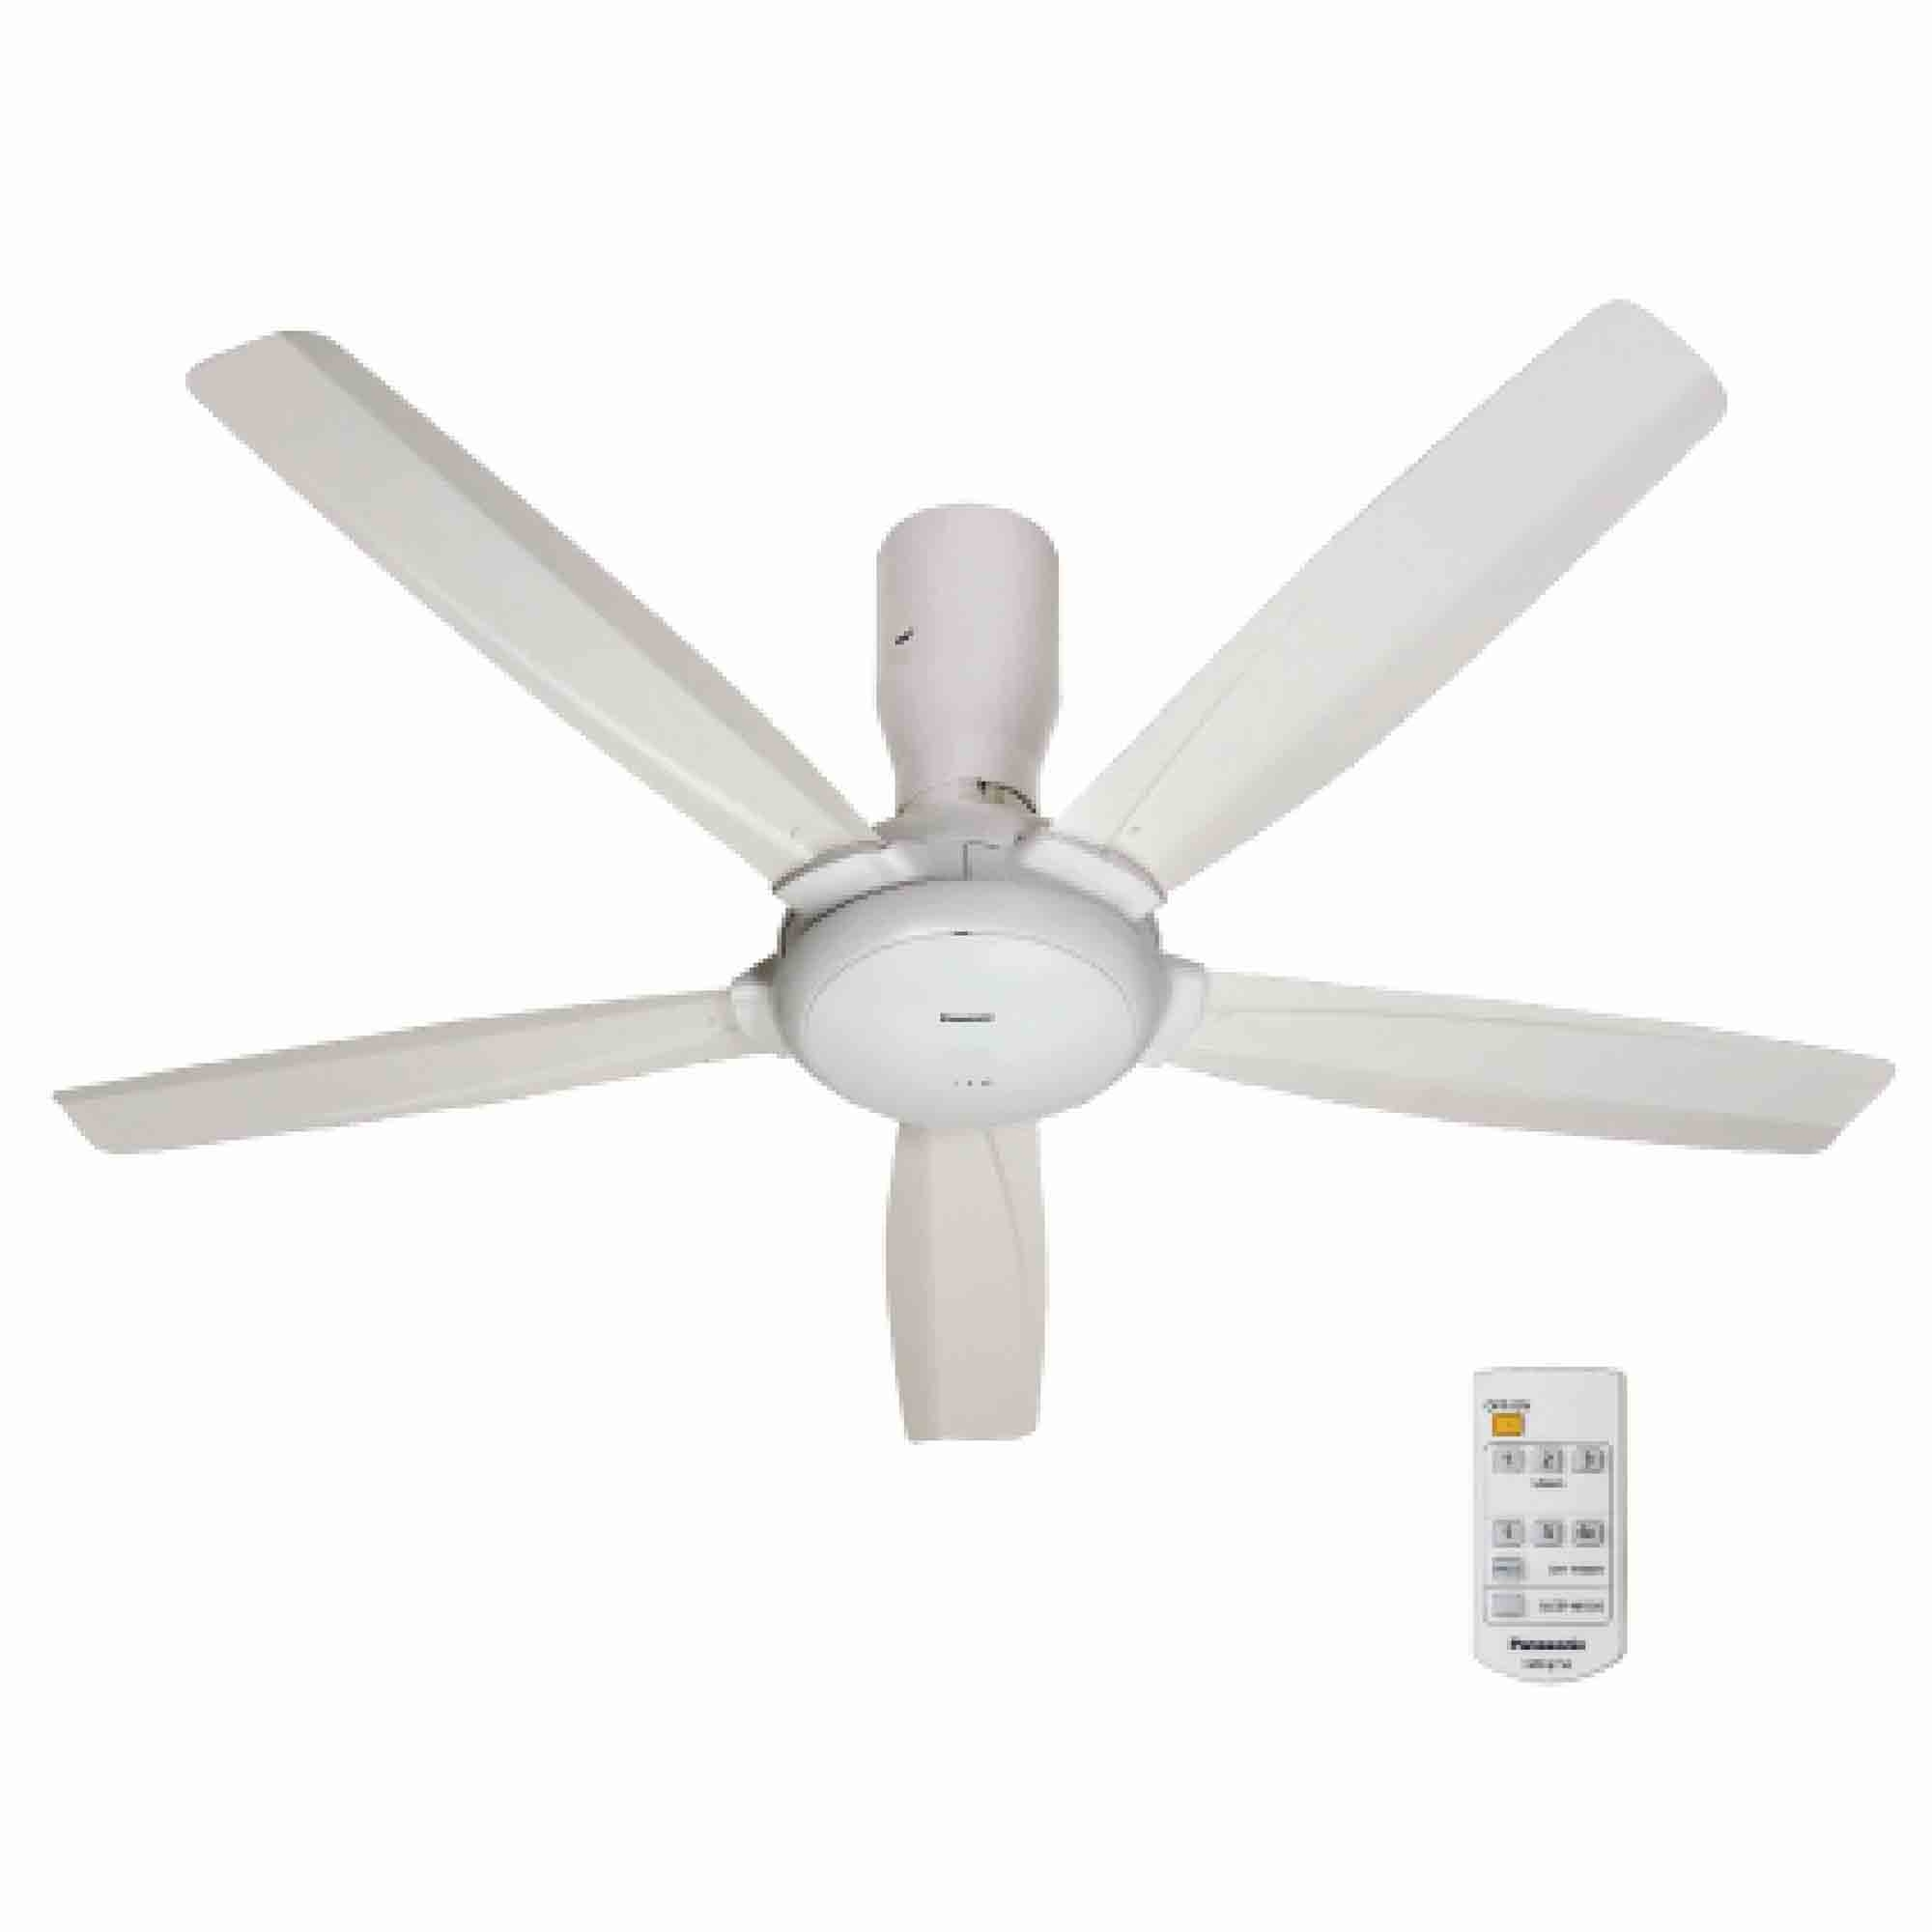 Panasonic Ceiling Fan F M14d5 Wt 56 End 5 2 2020 7 40 Pm